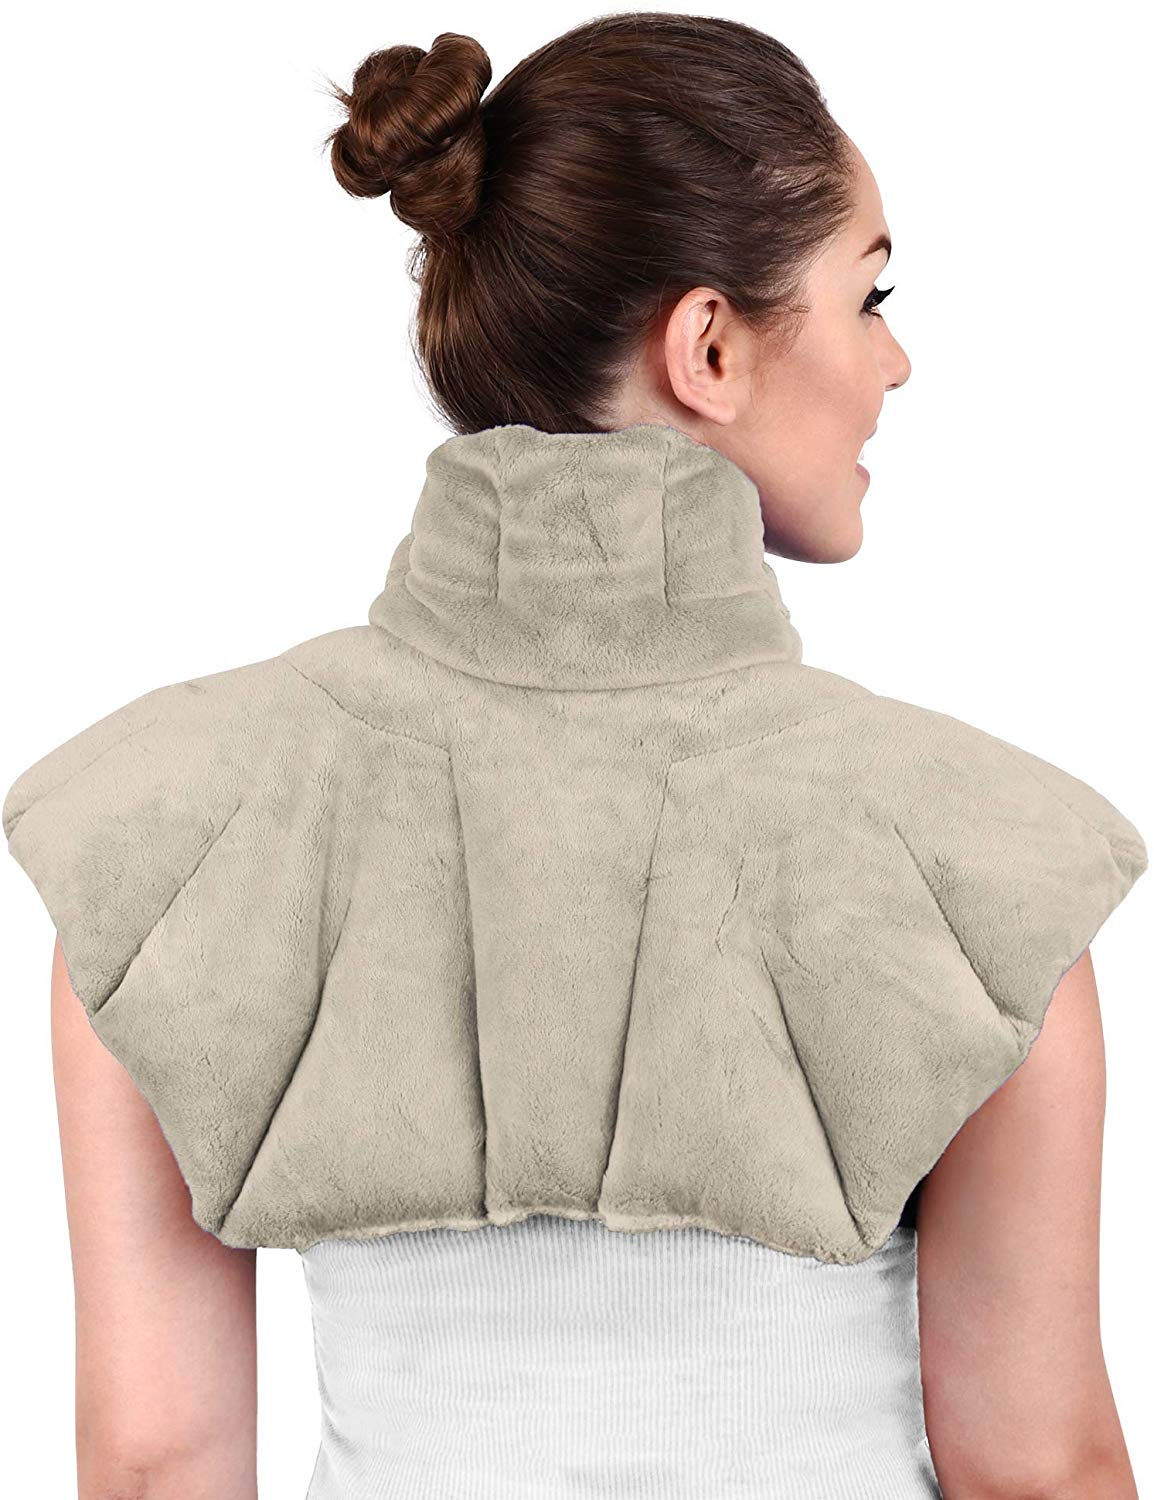 Large Microwavable Heating Pad for Neck and Shoulders